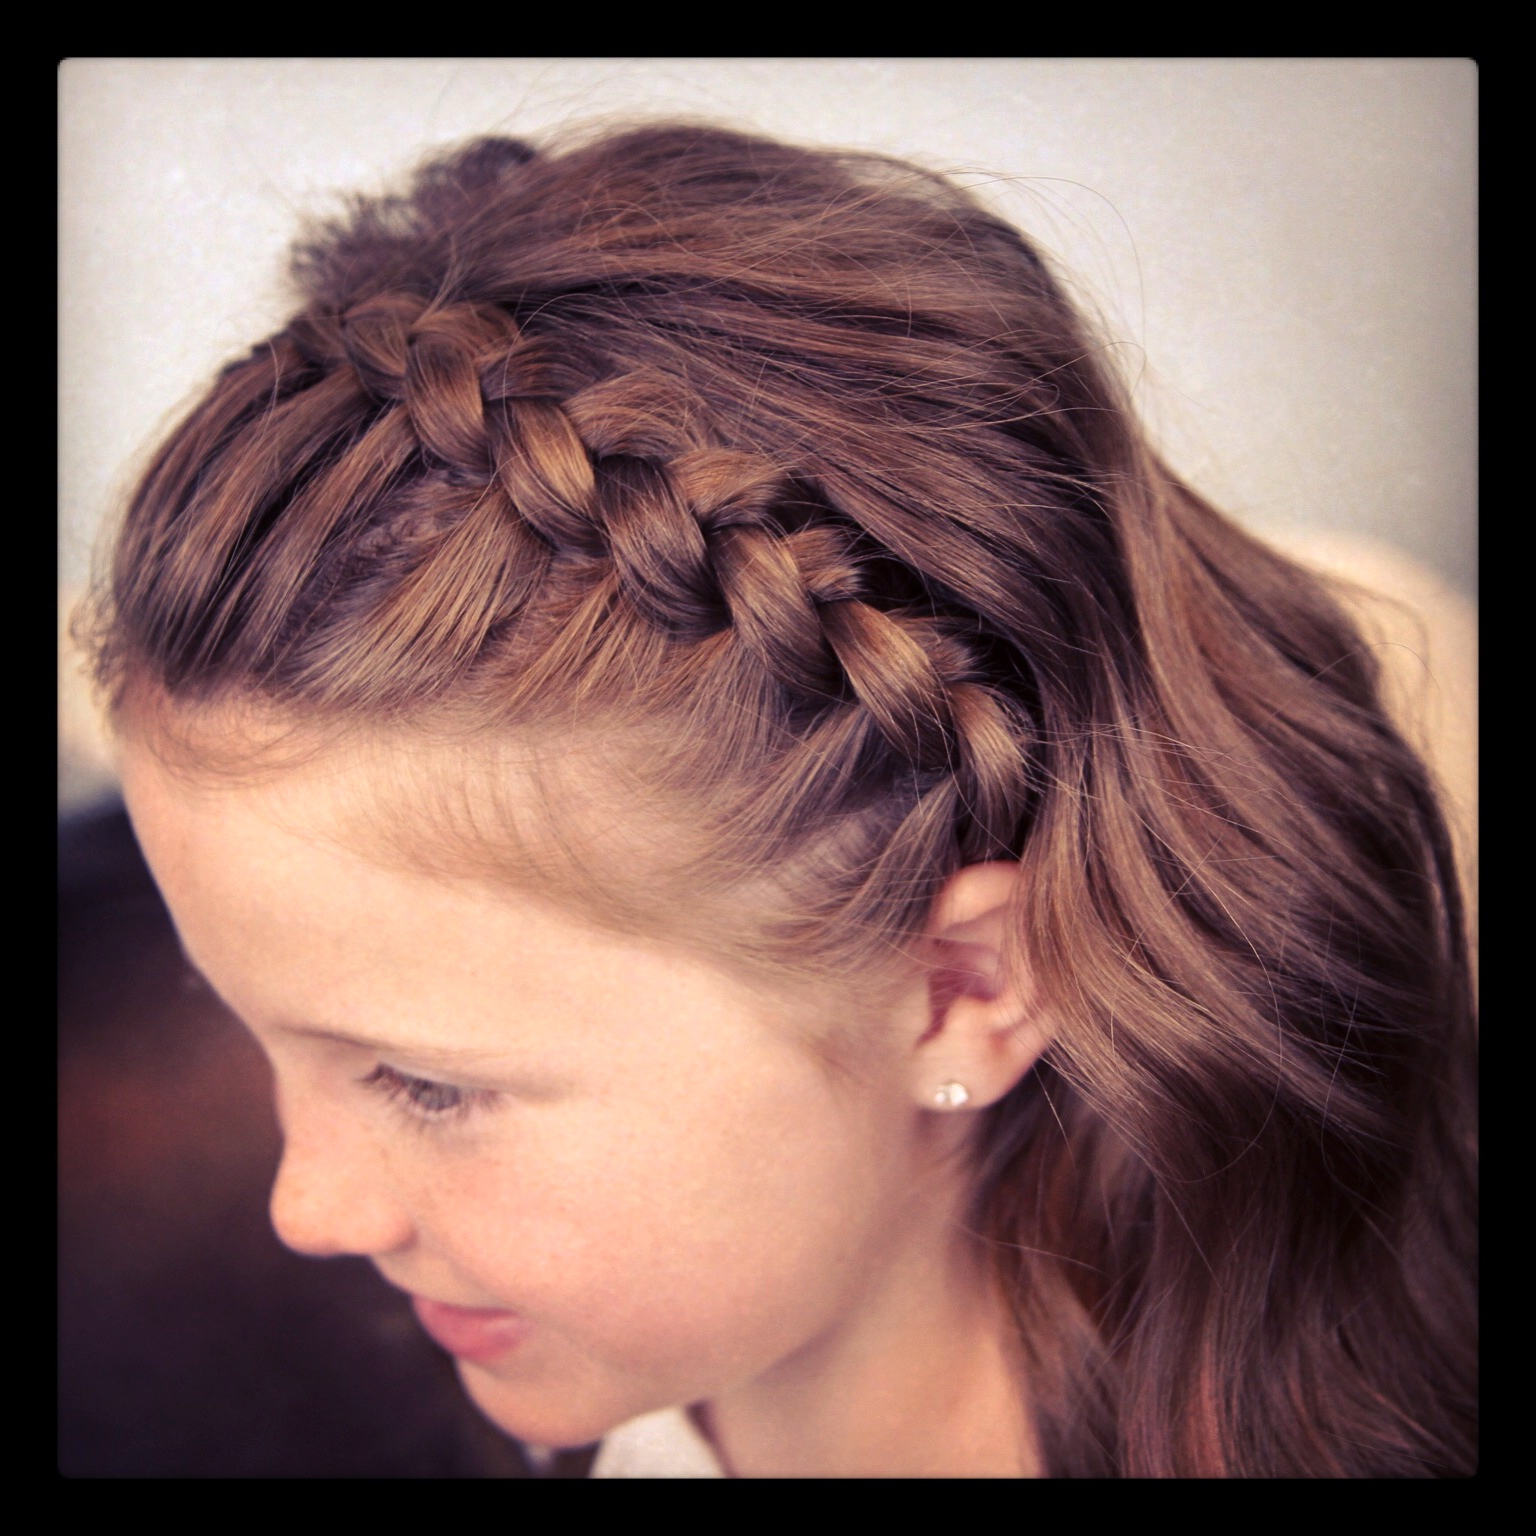 Braid Hairstyles (View 6 of 20)